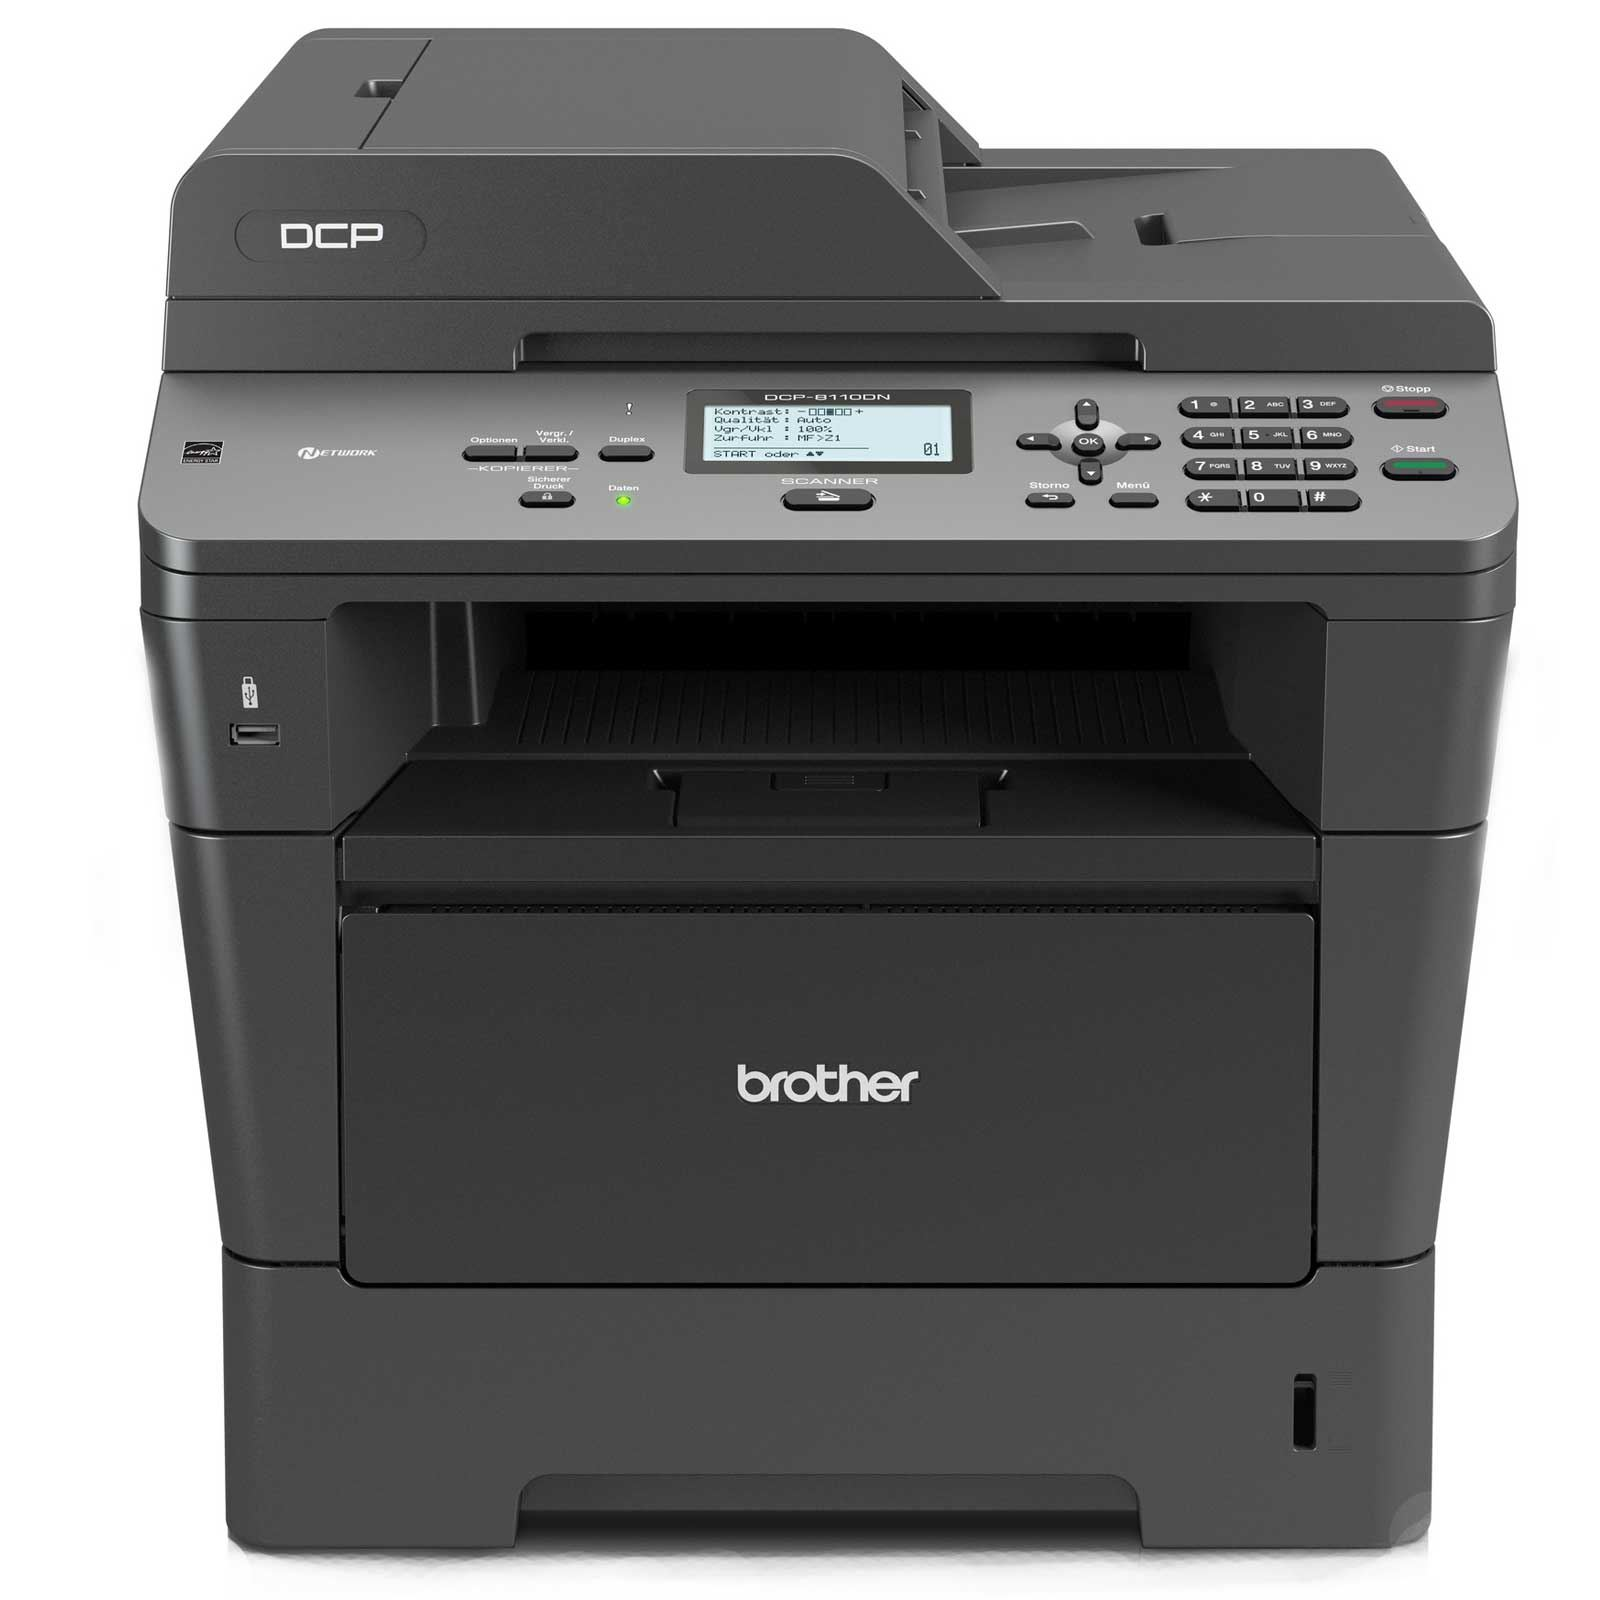 Download Drivers: Brother DCP-8150DN XML Paper Specification Printer